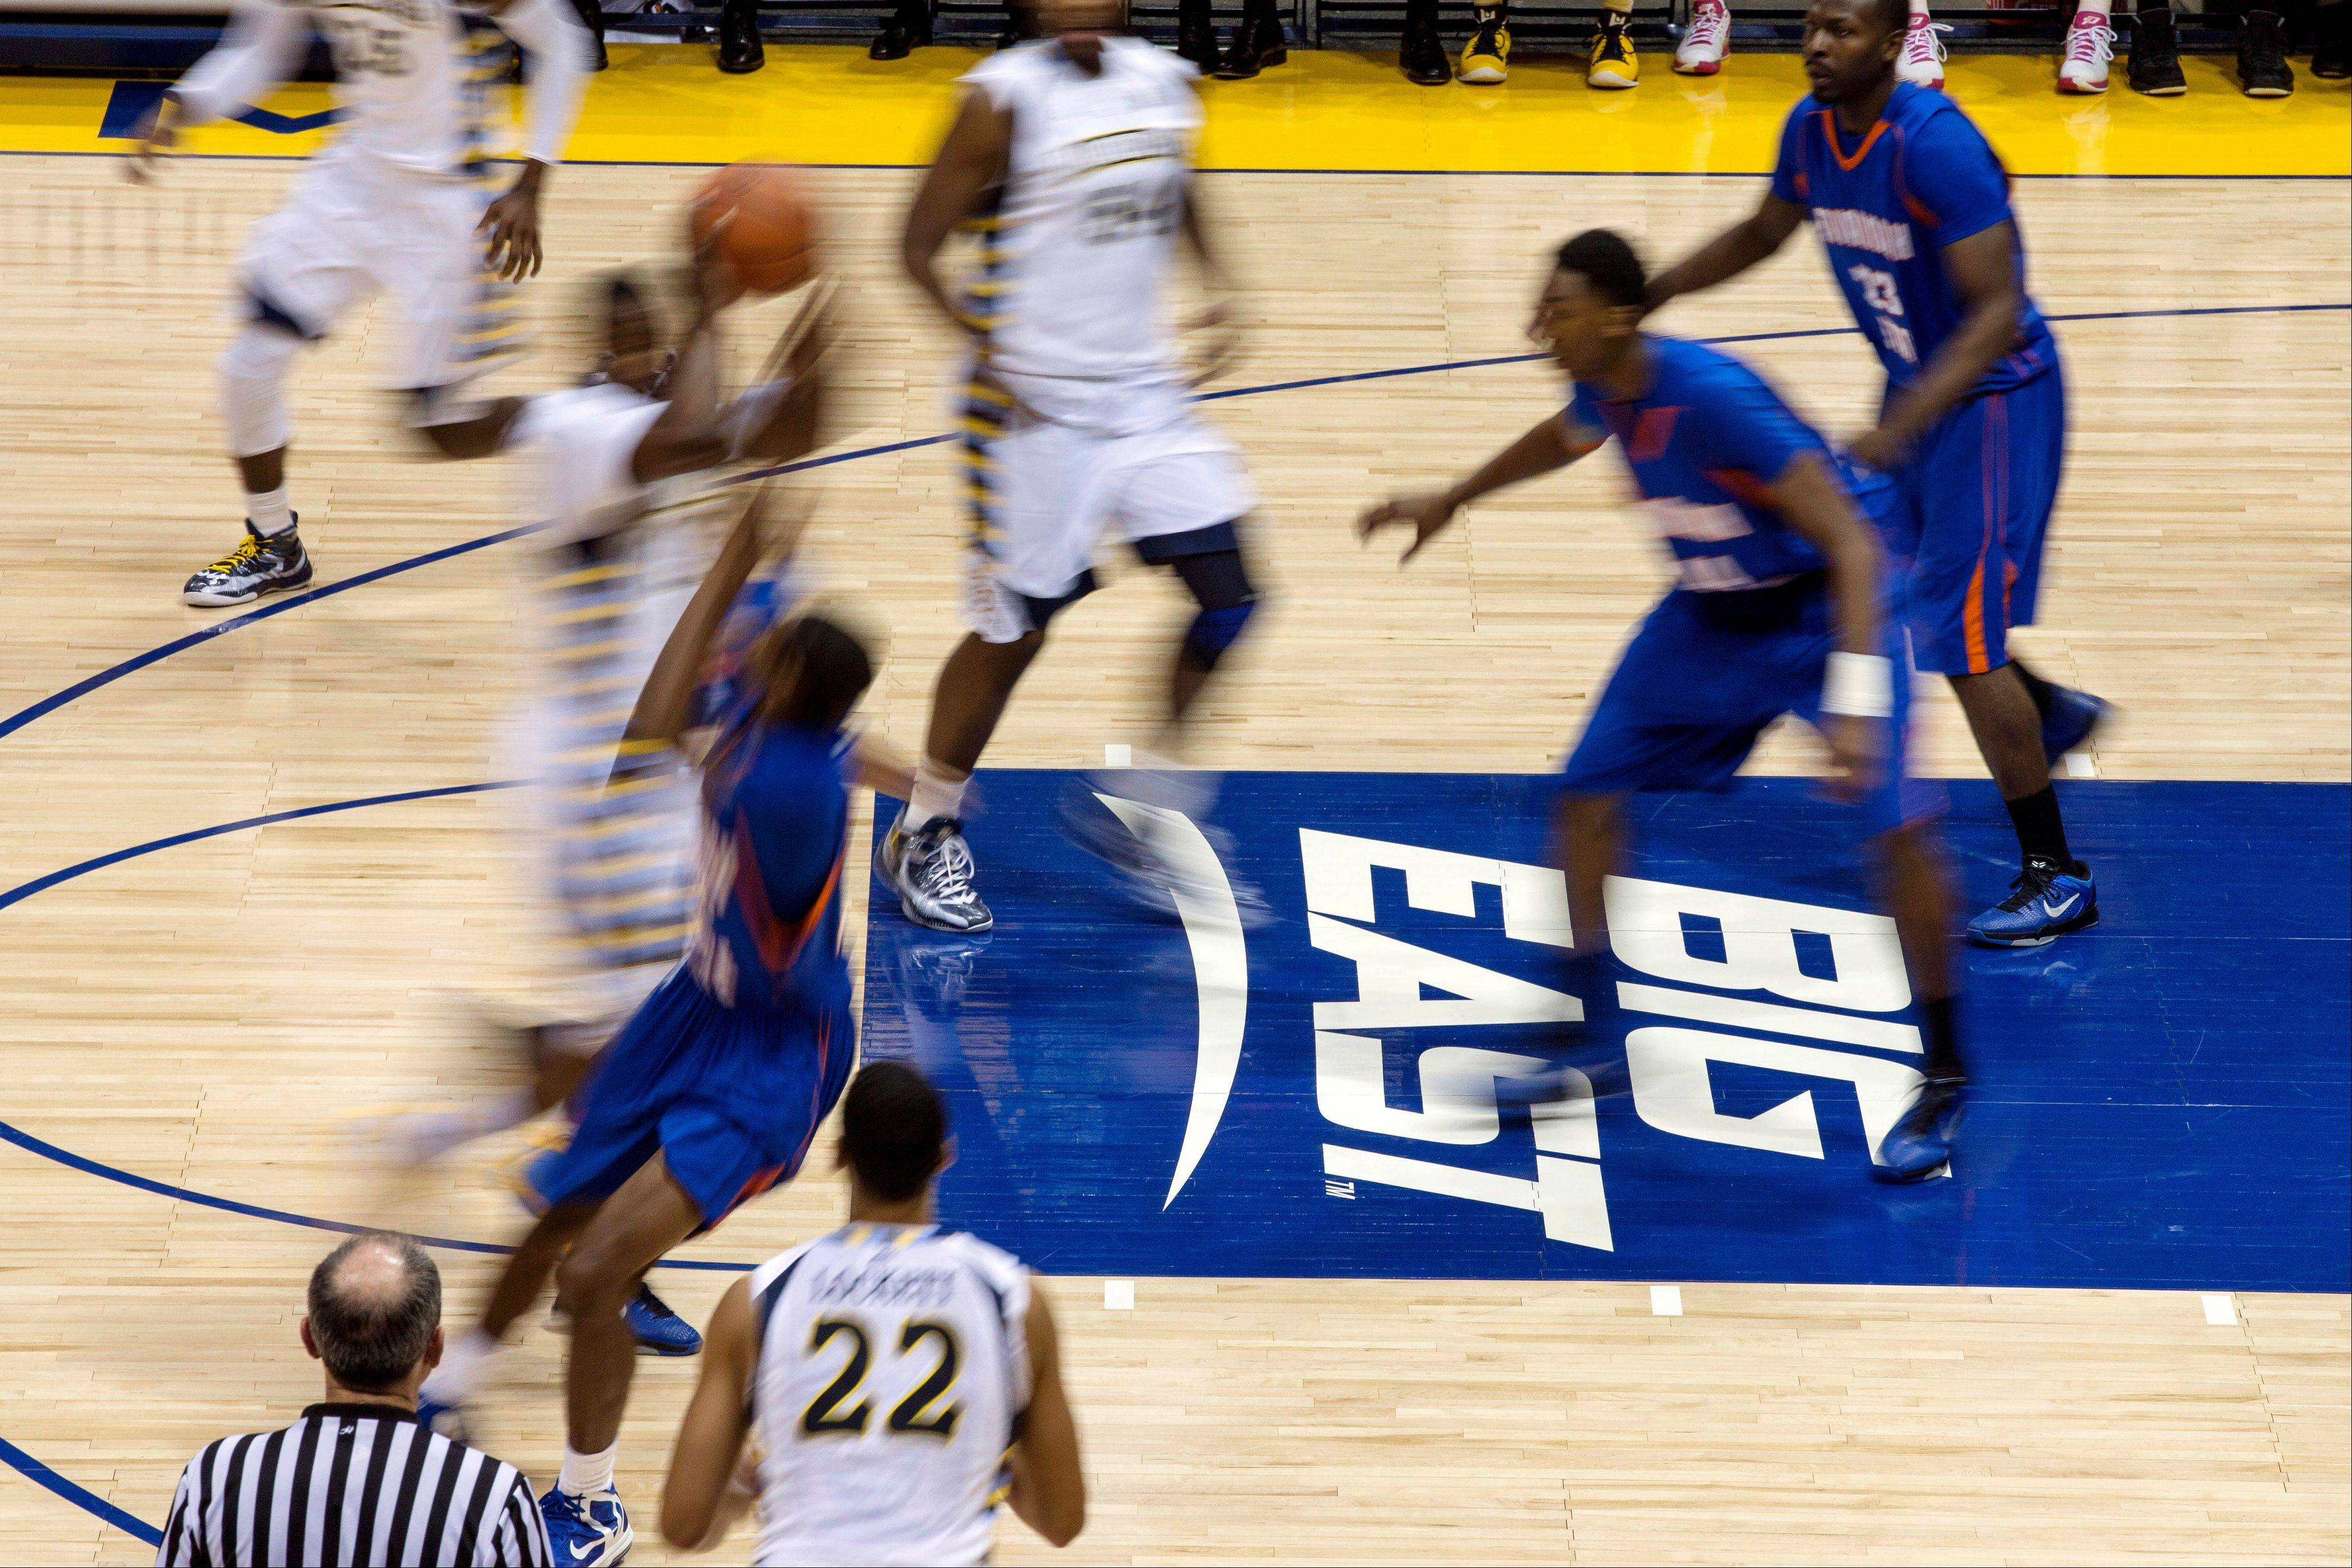 In this Dec. 15, 2012, file photo, Marquette plays against Savannah State during the second half of an NCAA college basketball game in Milwaukee. As a chunk of the Big East, Marquette included, transforms itself into a mostly or even all-Catholic basketball league, the conference faces a choice: play up or play down its faith-based roots?